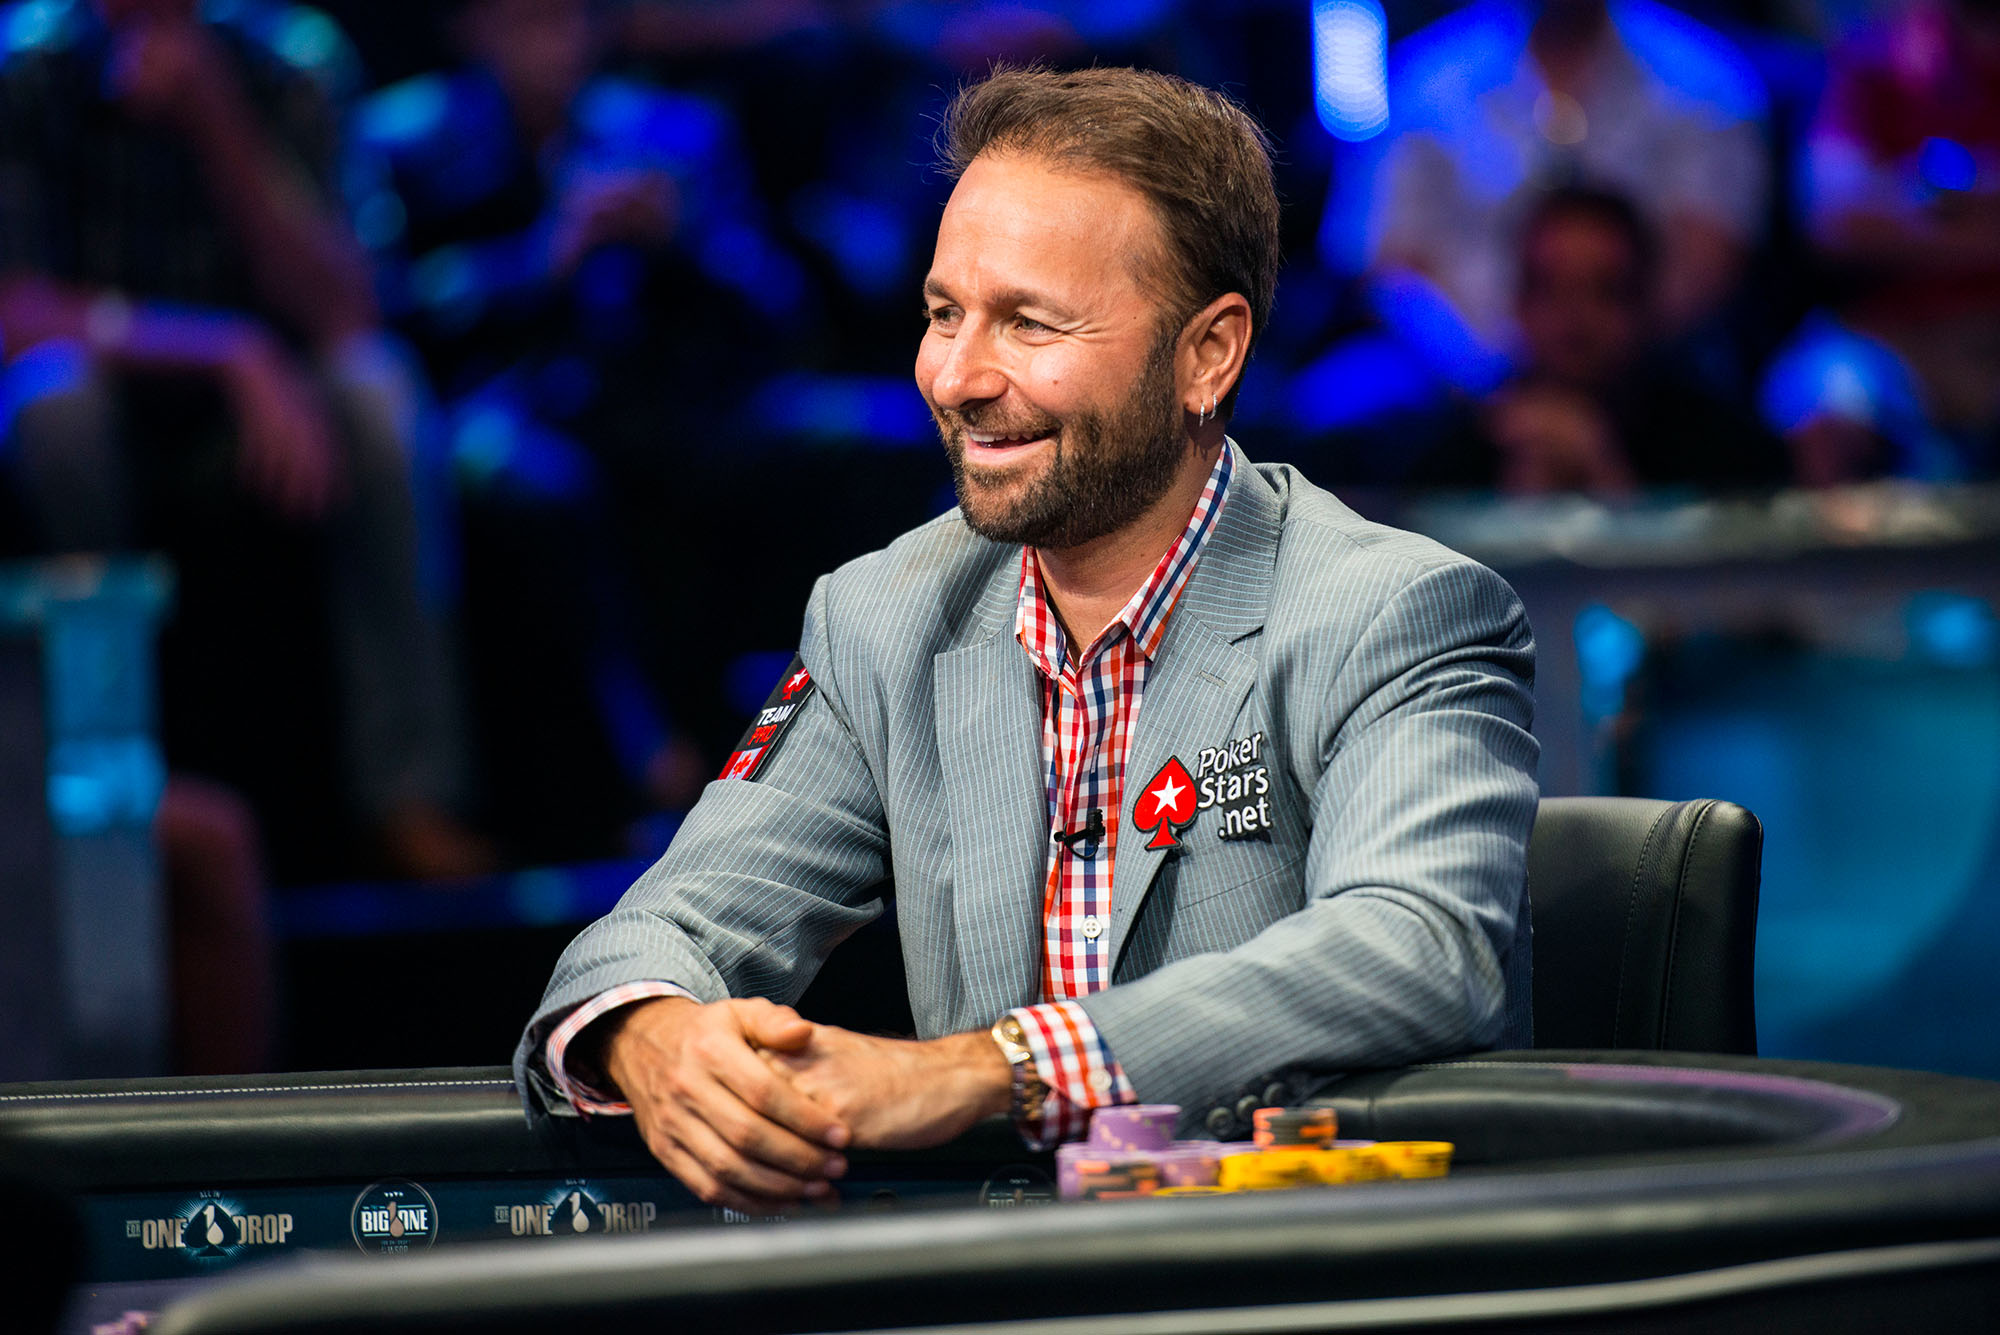 POKERSTARS.NET - $8.2 million haul puts Canadian Daniel Negreanu